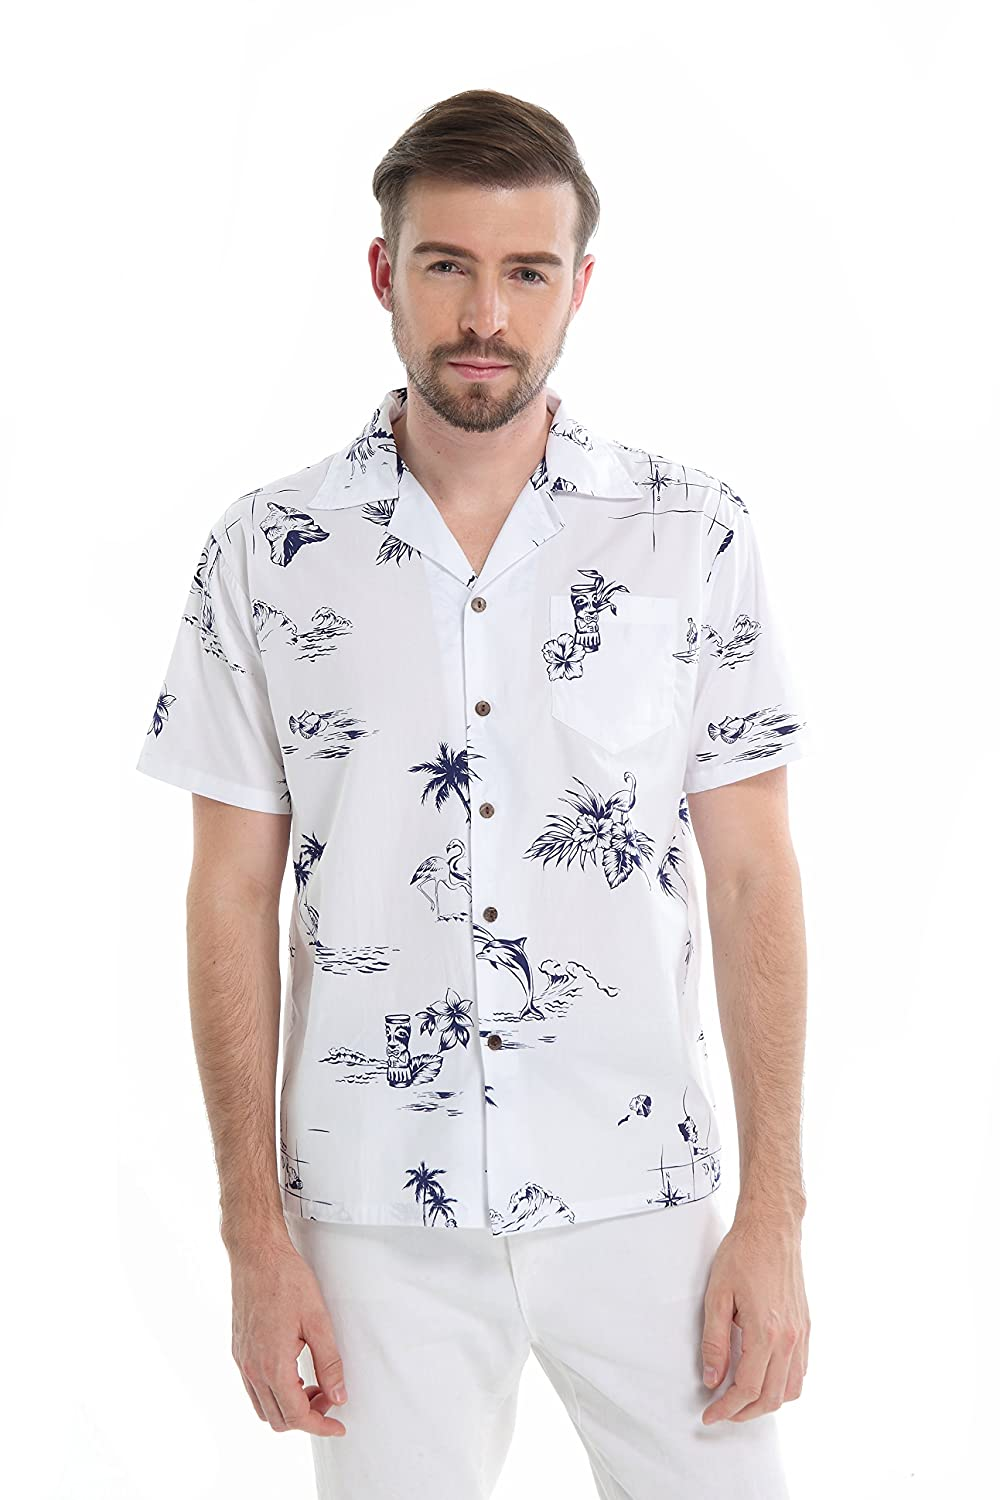 Matching Father Son Hawaiian Luau Outfit Men Shirt Boy Shirt Shorts Classic White Flamingo